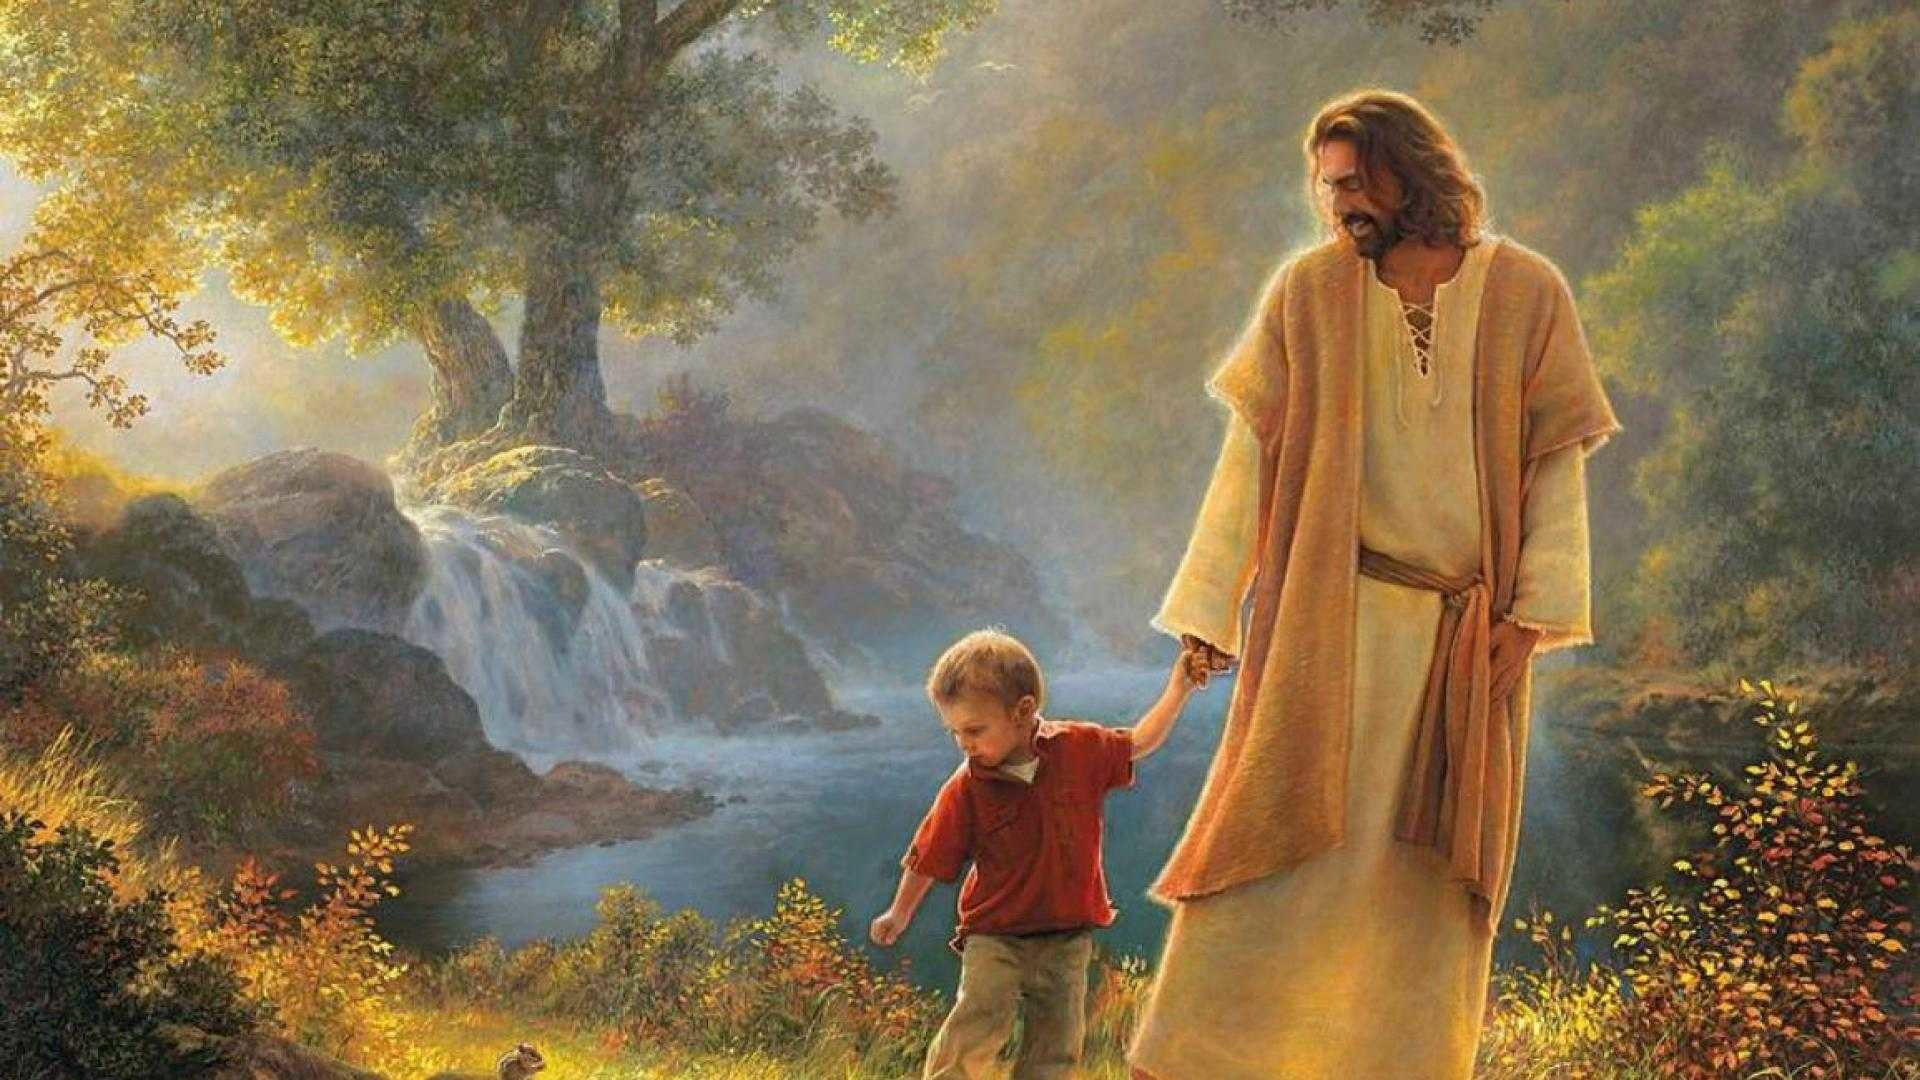 68 Jesus Christ Wallpapers on WallpaperPlay 1920x1080